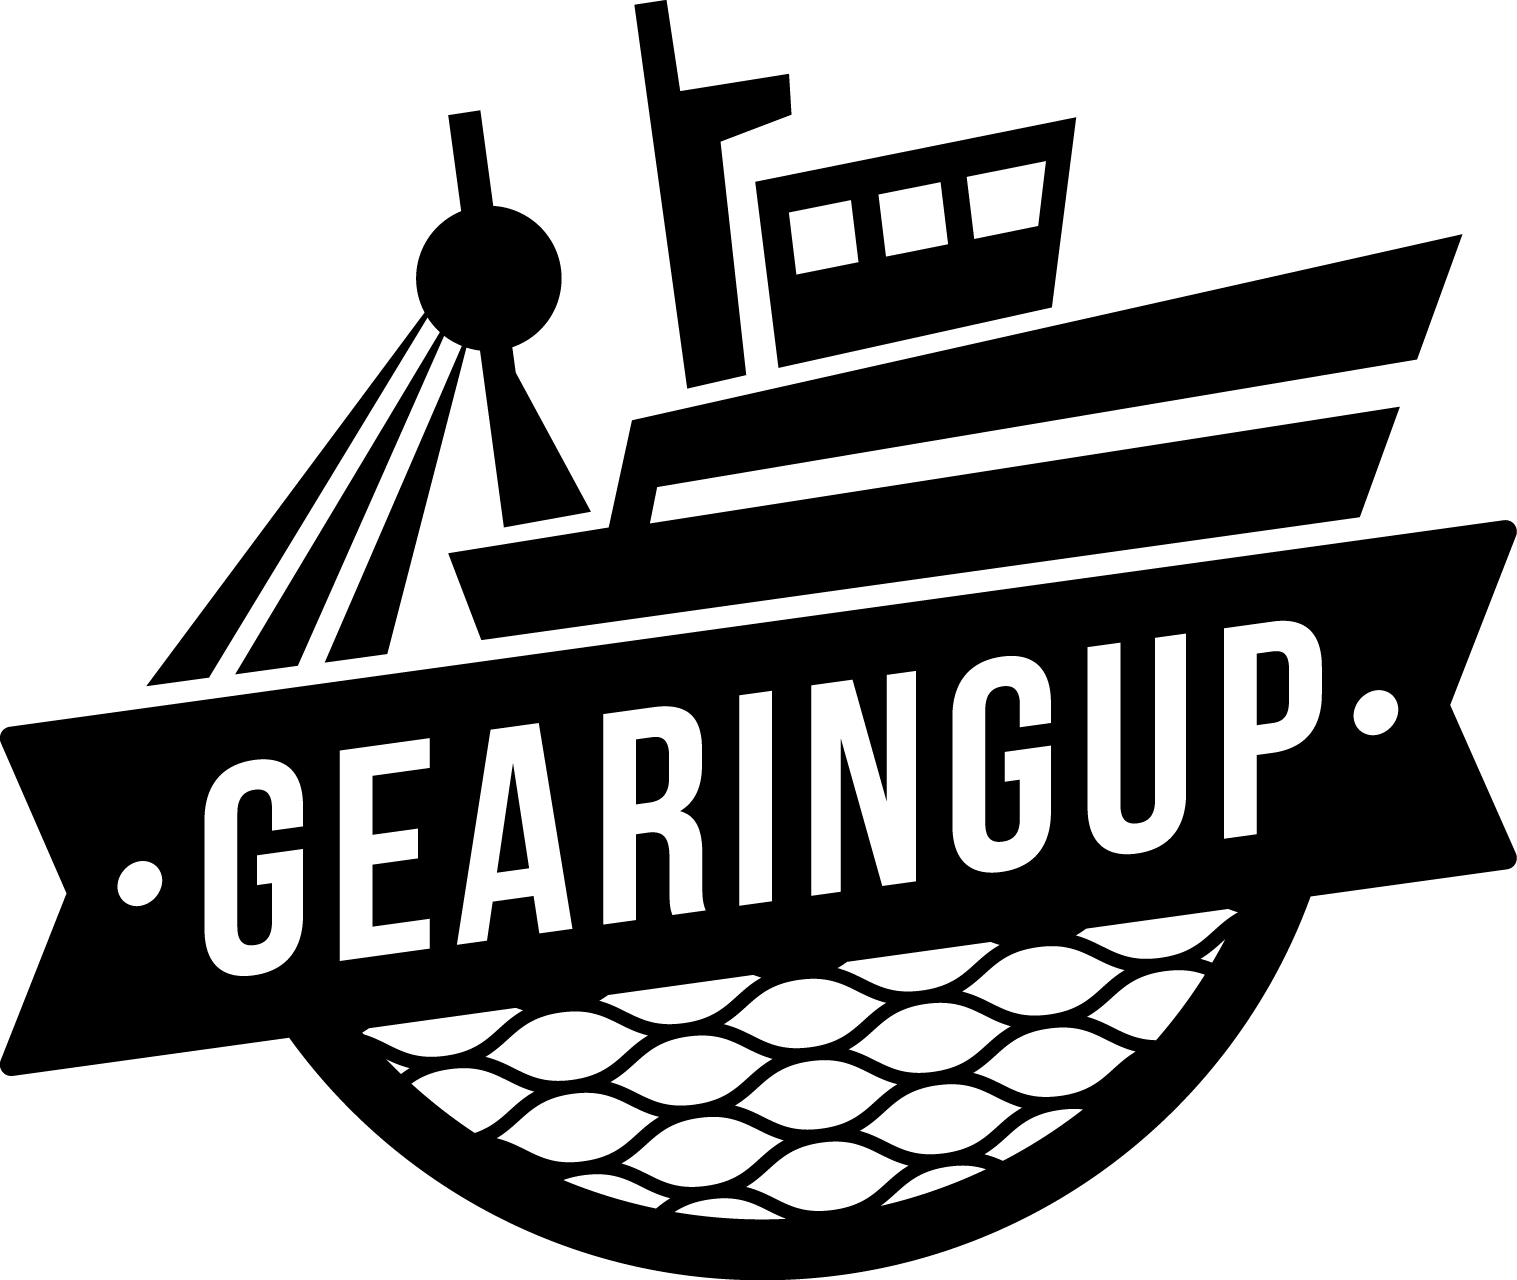 Gearing Up - mono.png